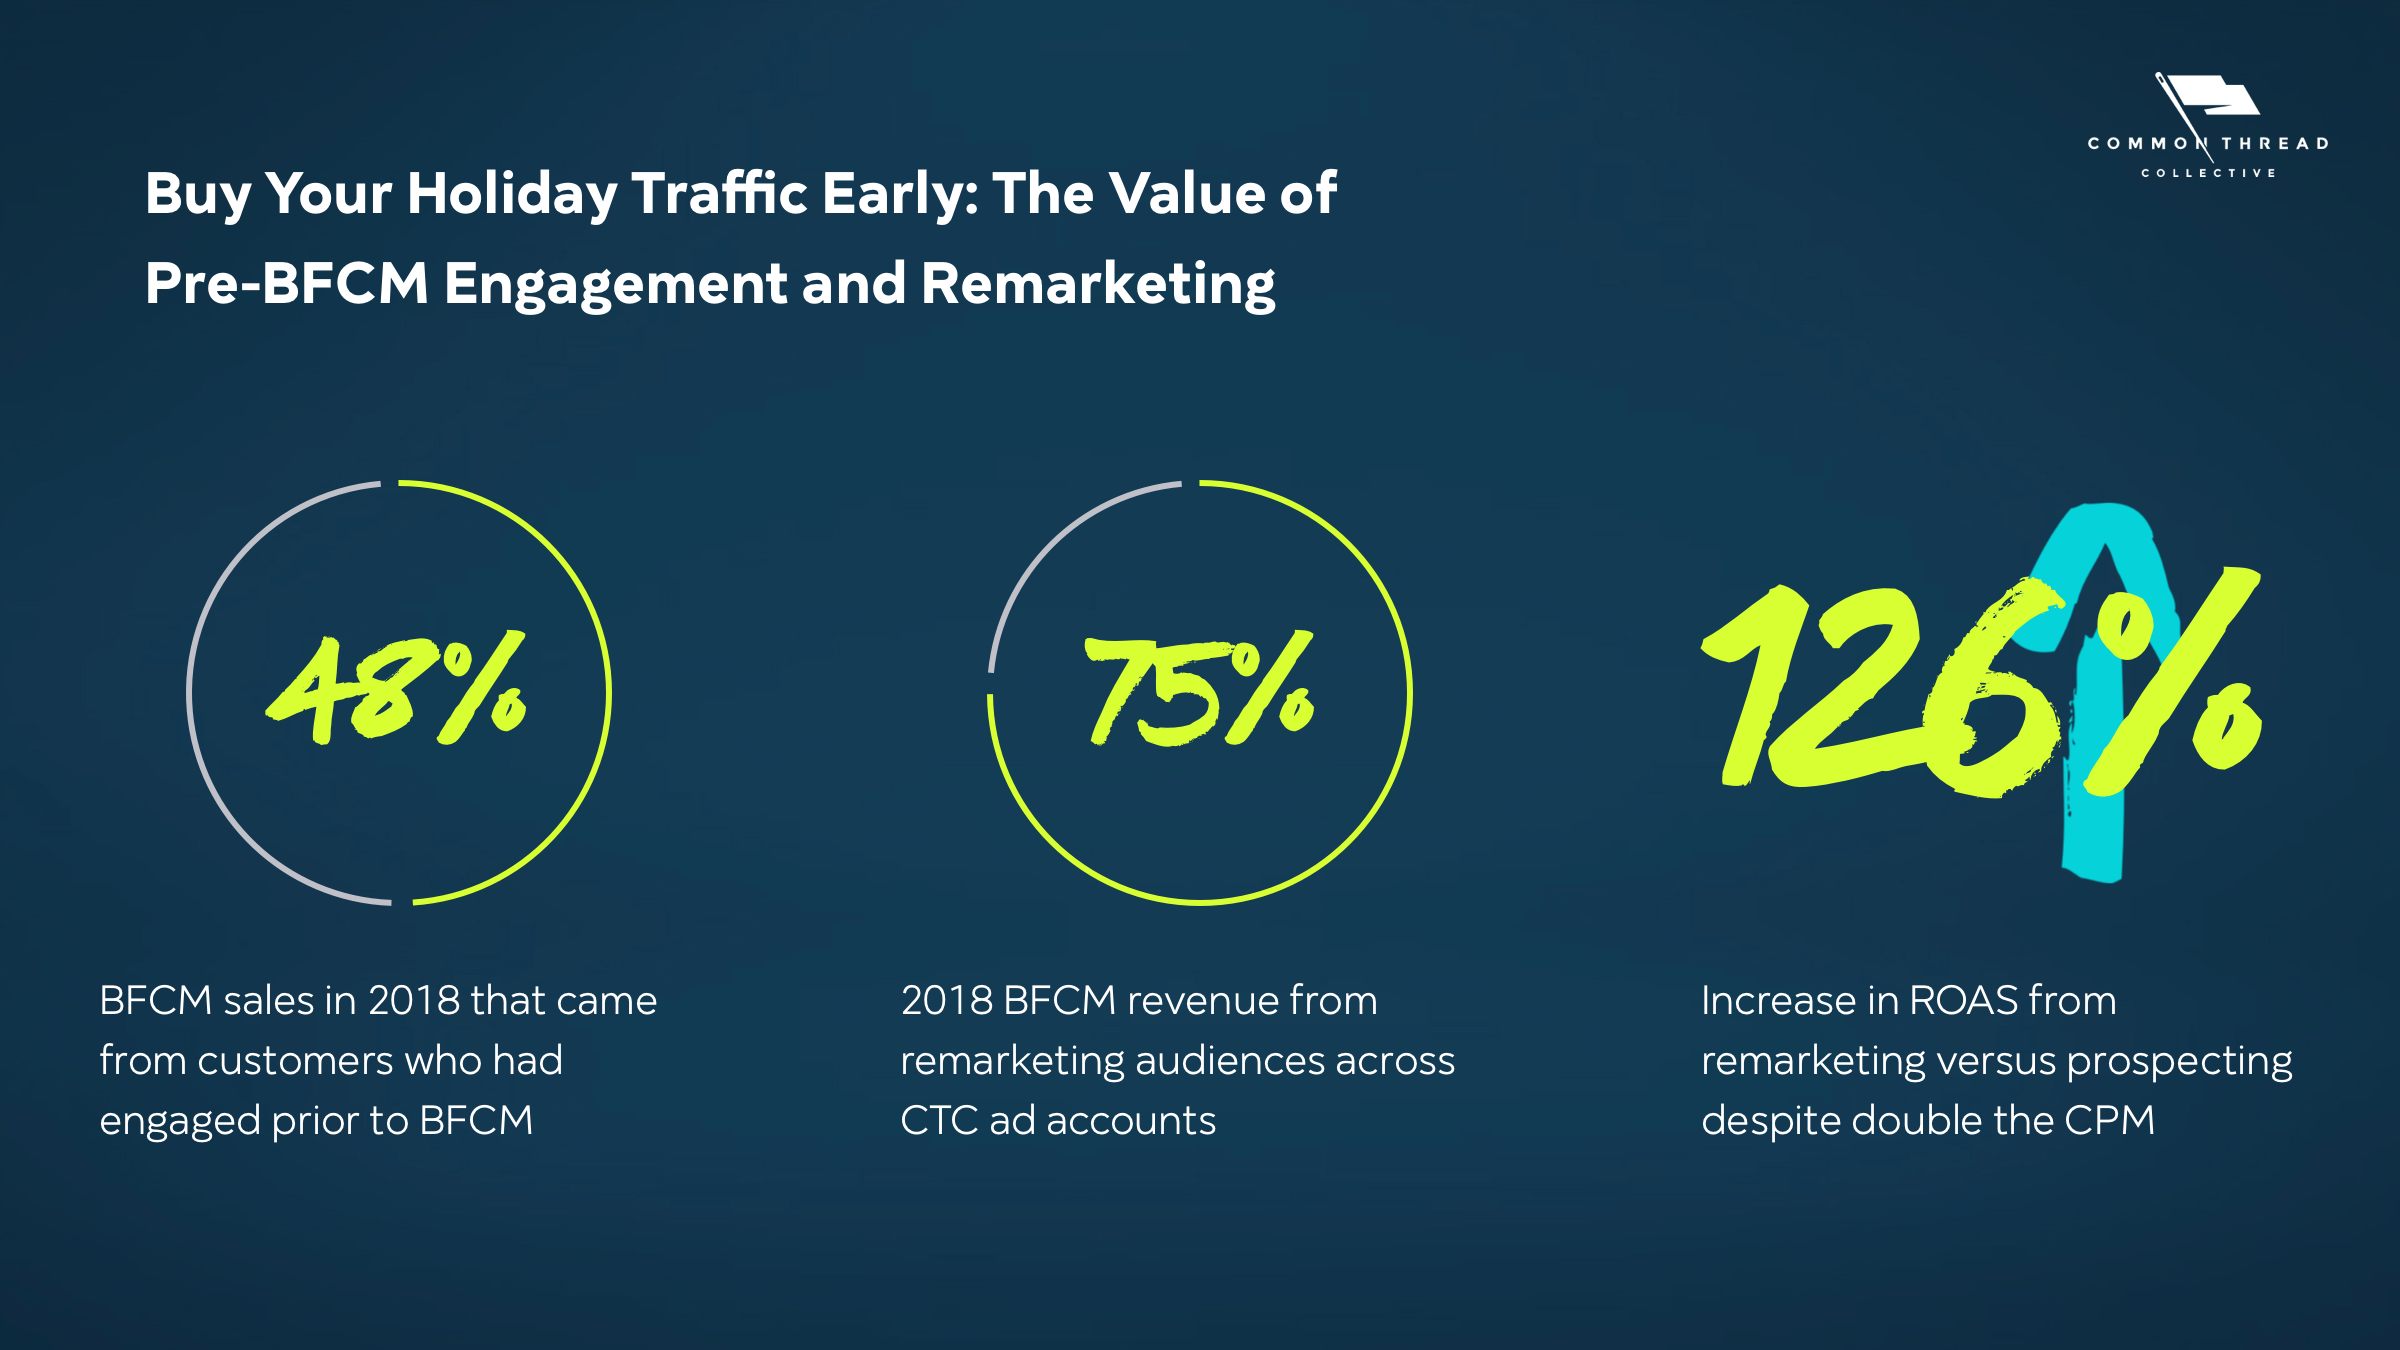 The value of remarketing audiences and loyal customers during holiday campaigns